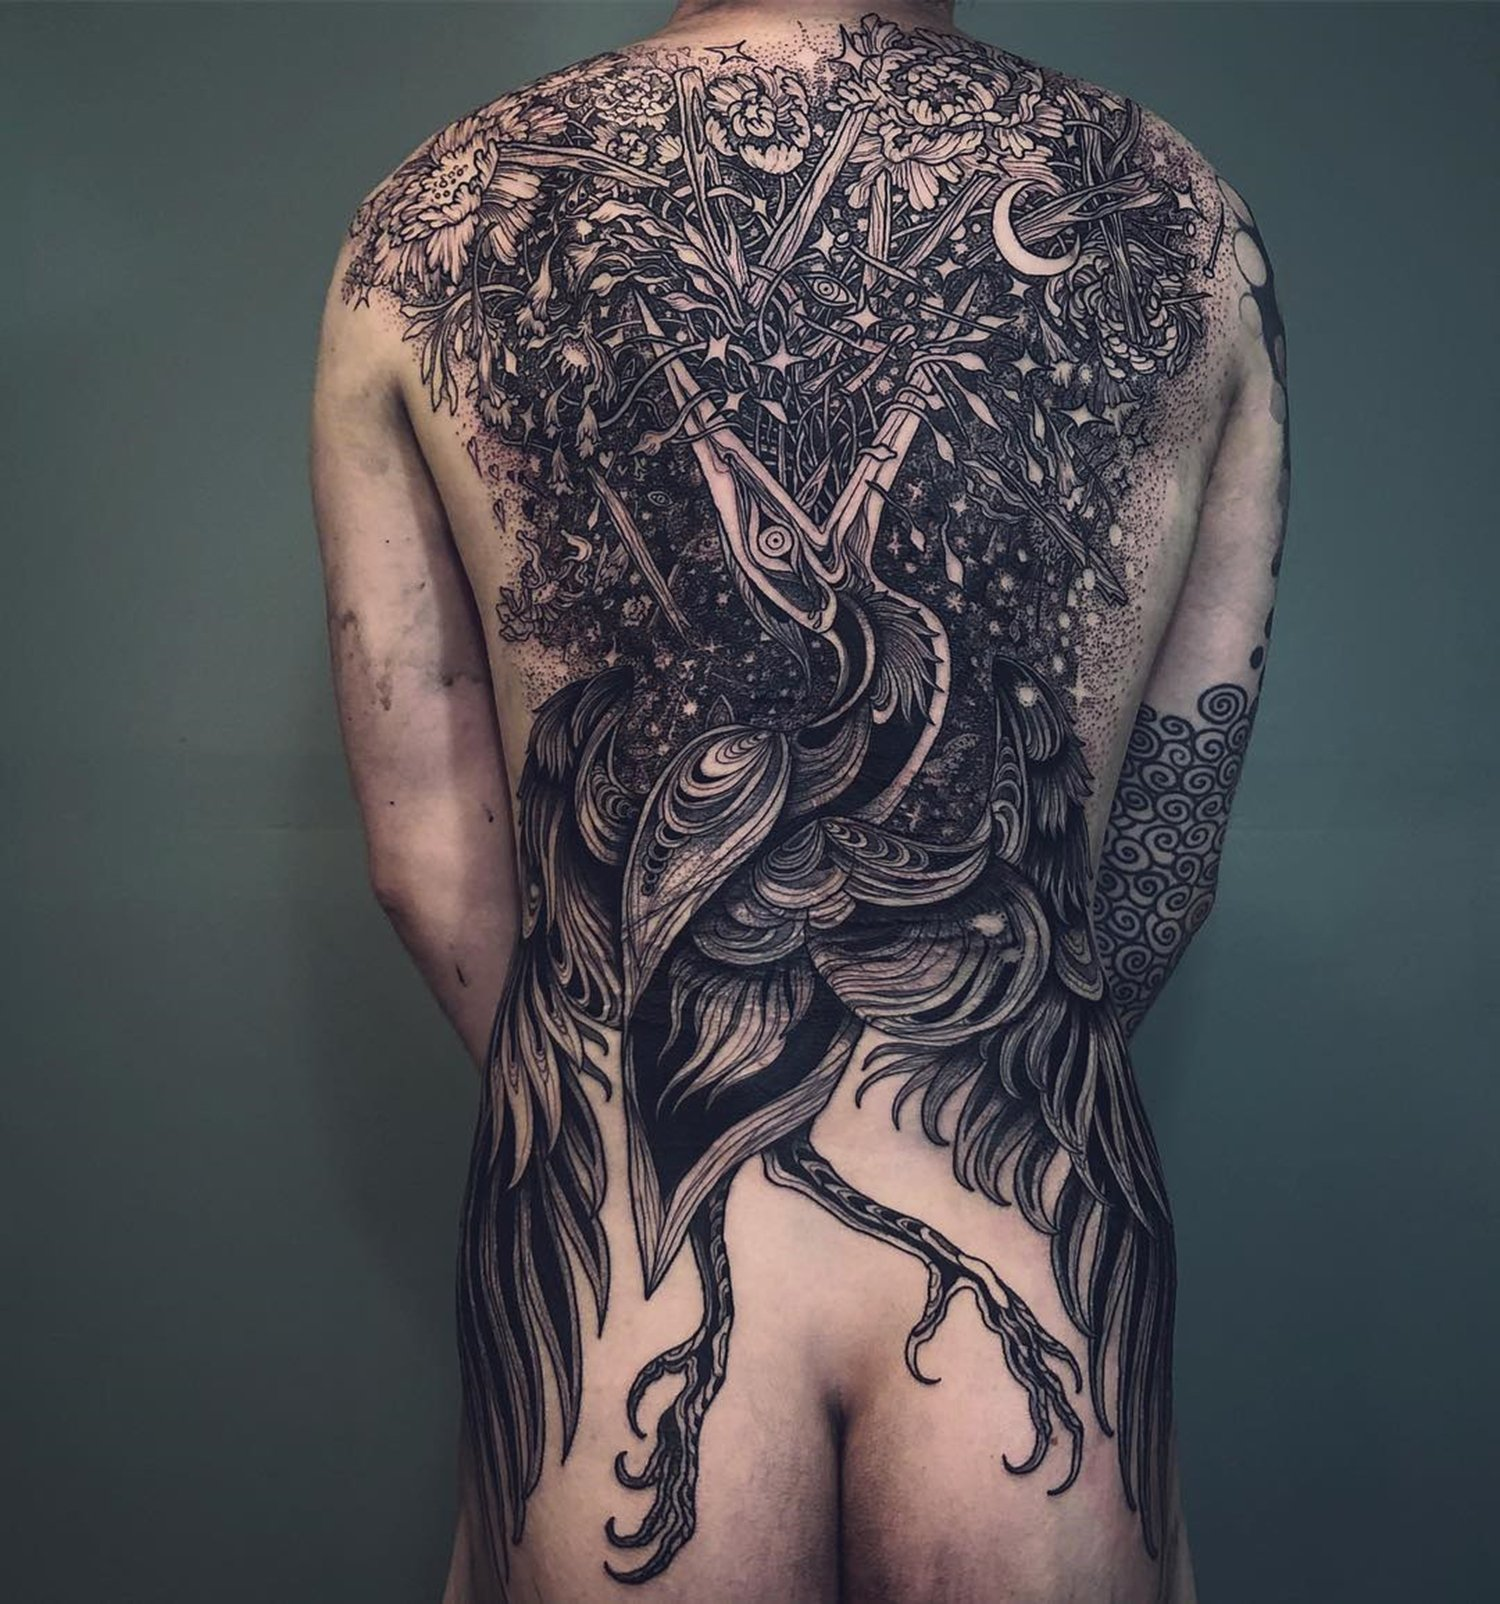 kingfisher back tattoo, illustrative by loone